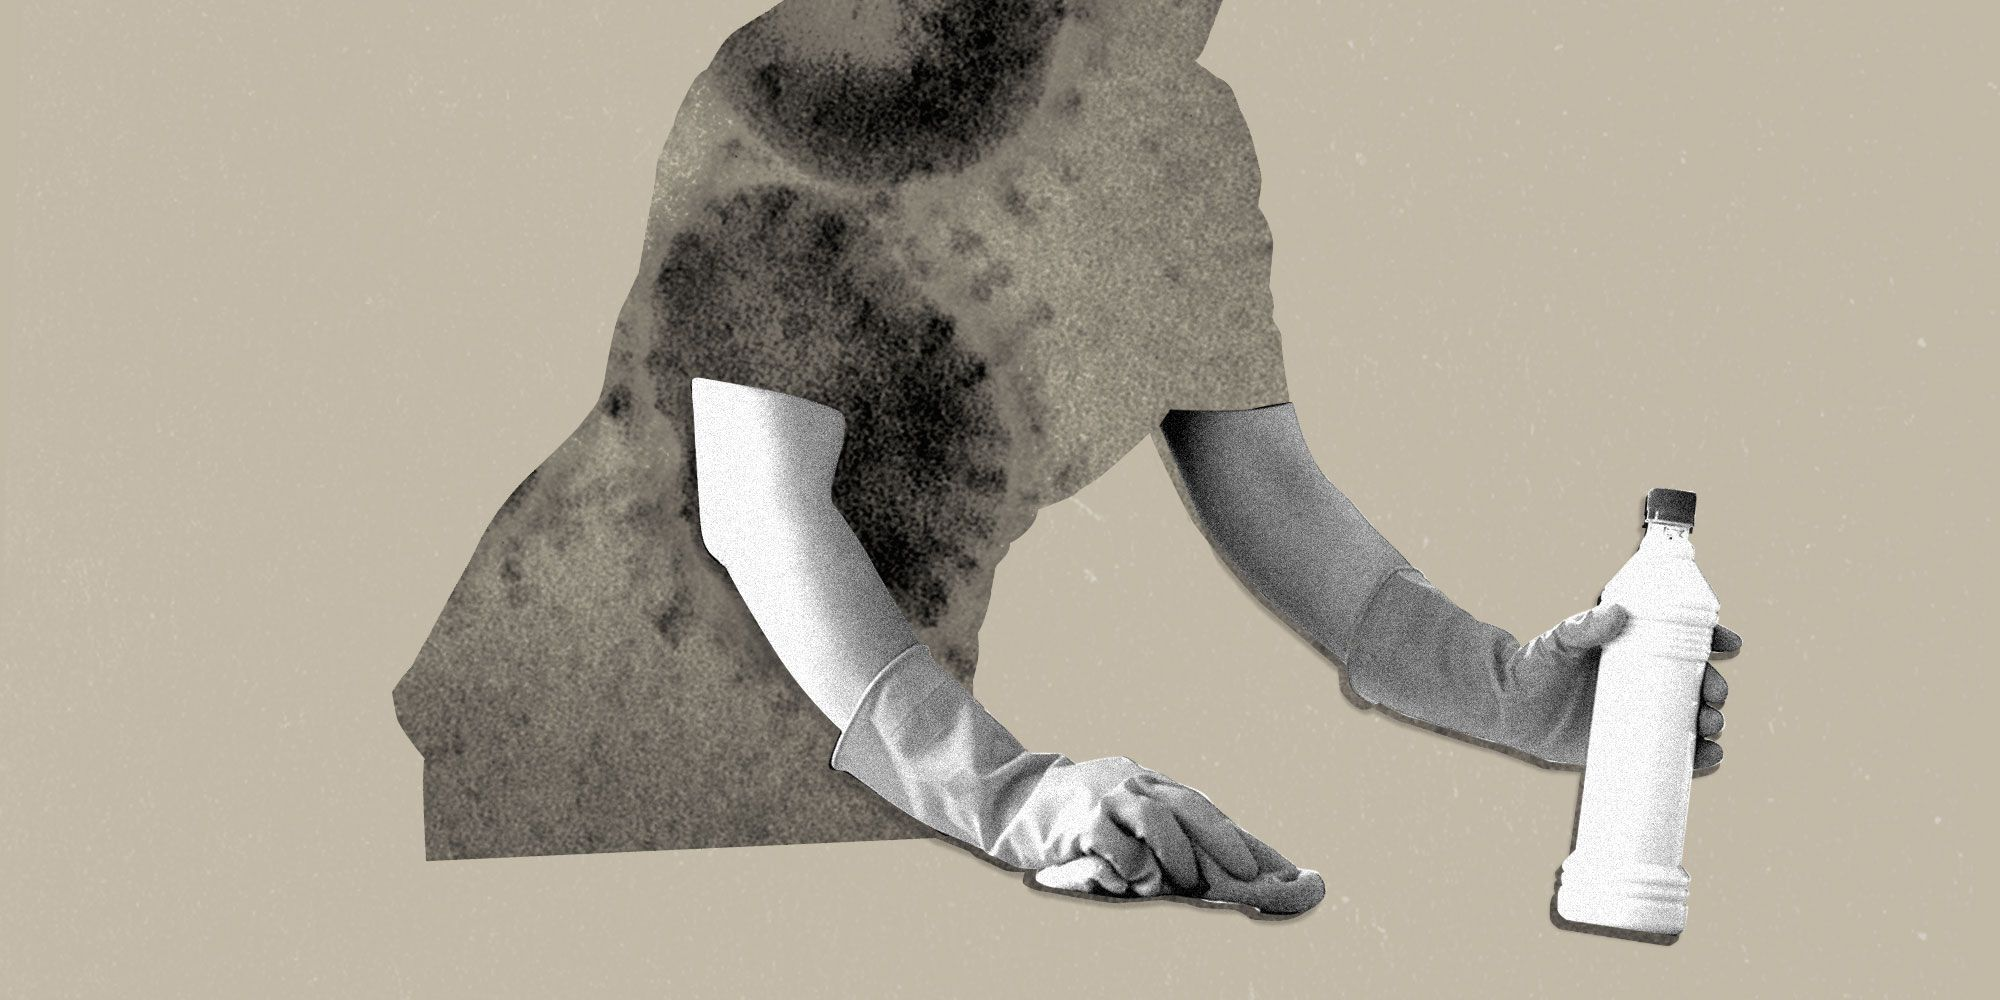 Undocumented and Unpaid: How Domestic Workers Are Risking Their Lives in the Pandemic